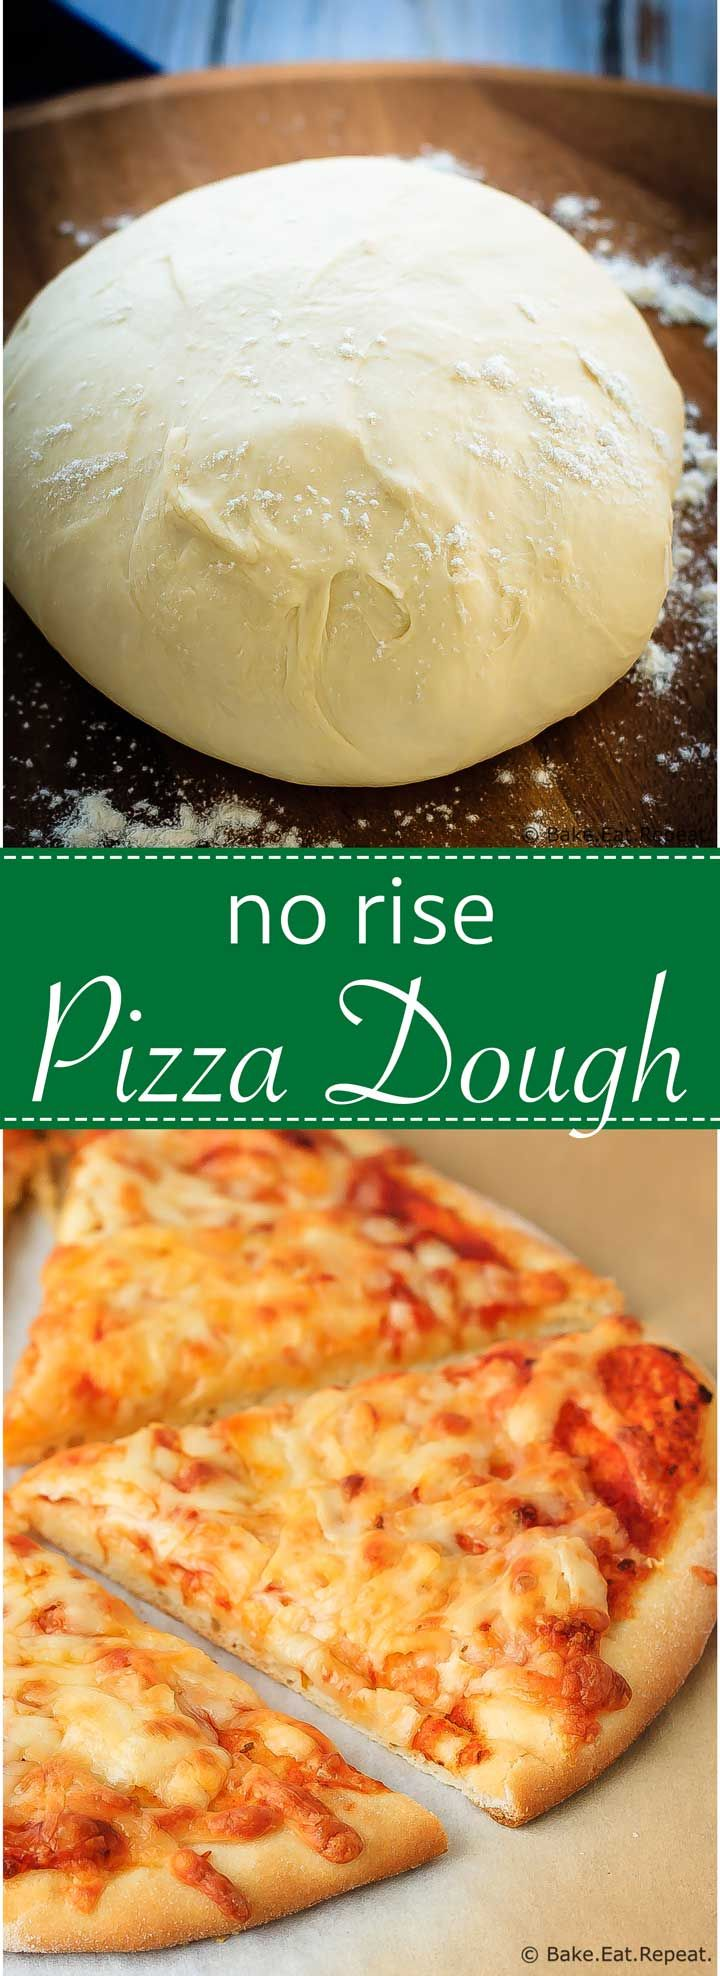 no rise pizza dough fast and easy to make no rise pizza dough